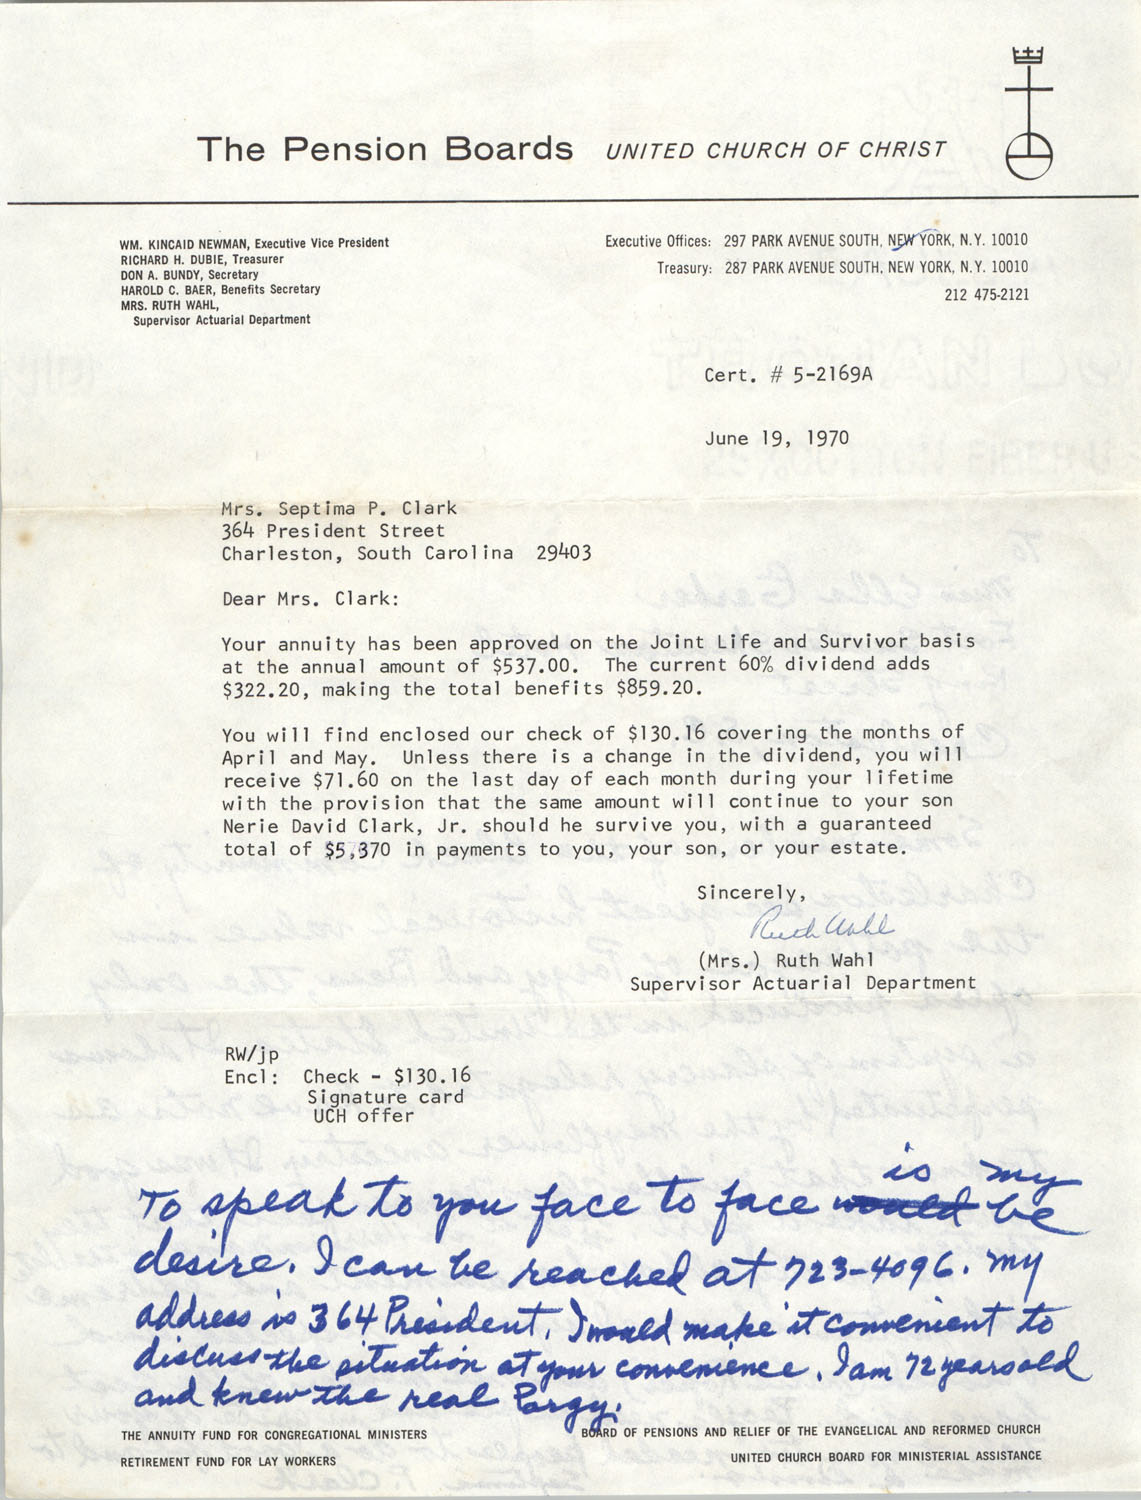 Draft of Letter from Septima Clark to Ella Gerber